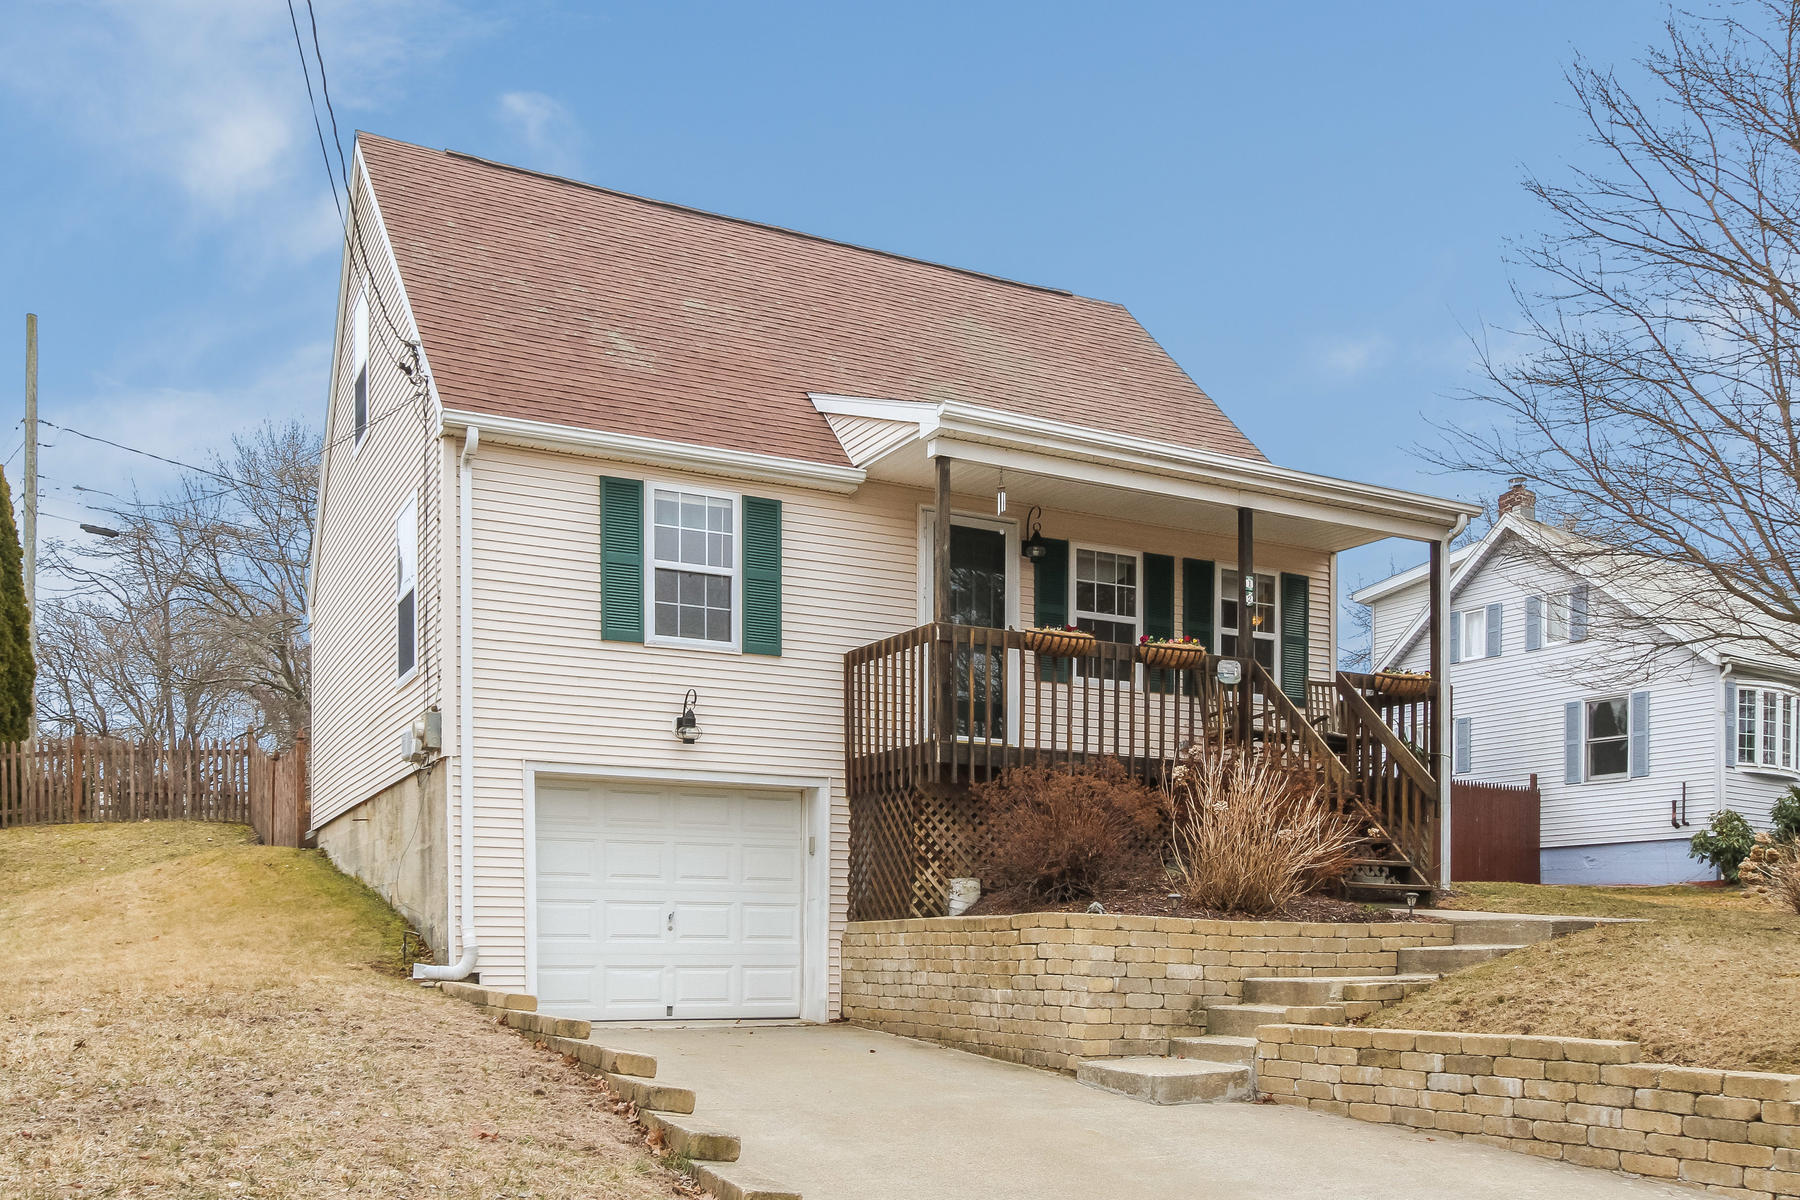 Single Family Homes for Sale at Minutes to Niantic Village 12 Millstone Road West Waterford, Connecticut 06385 United States